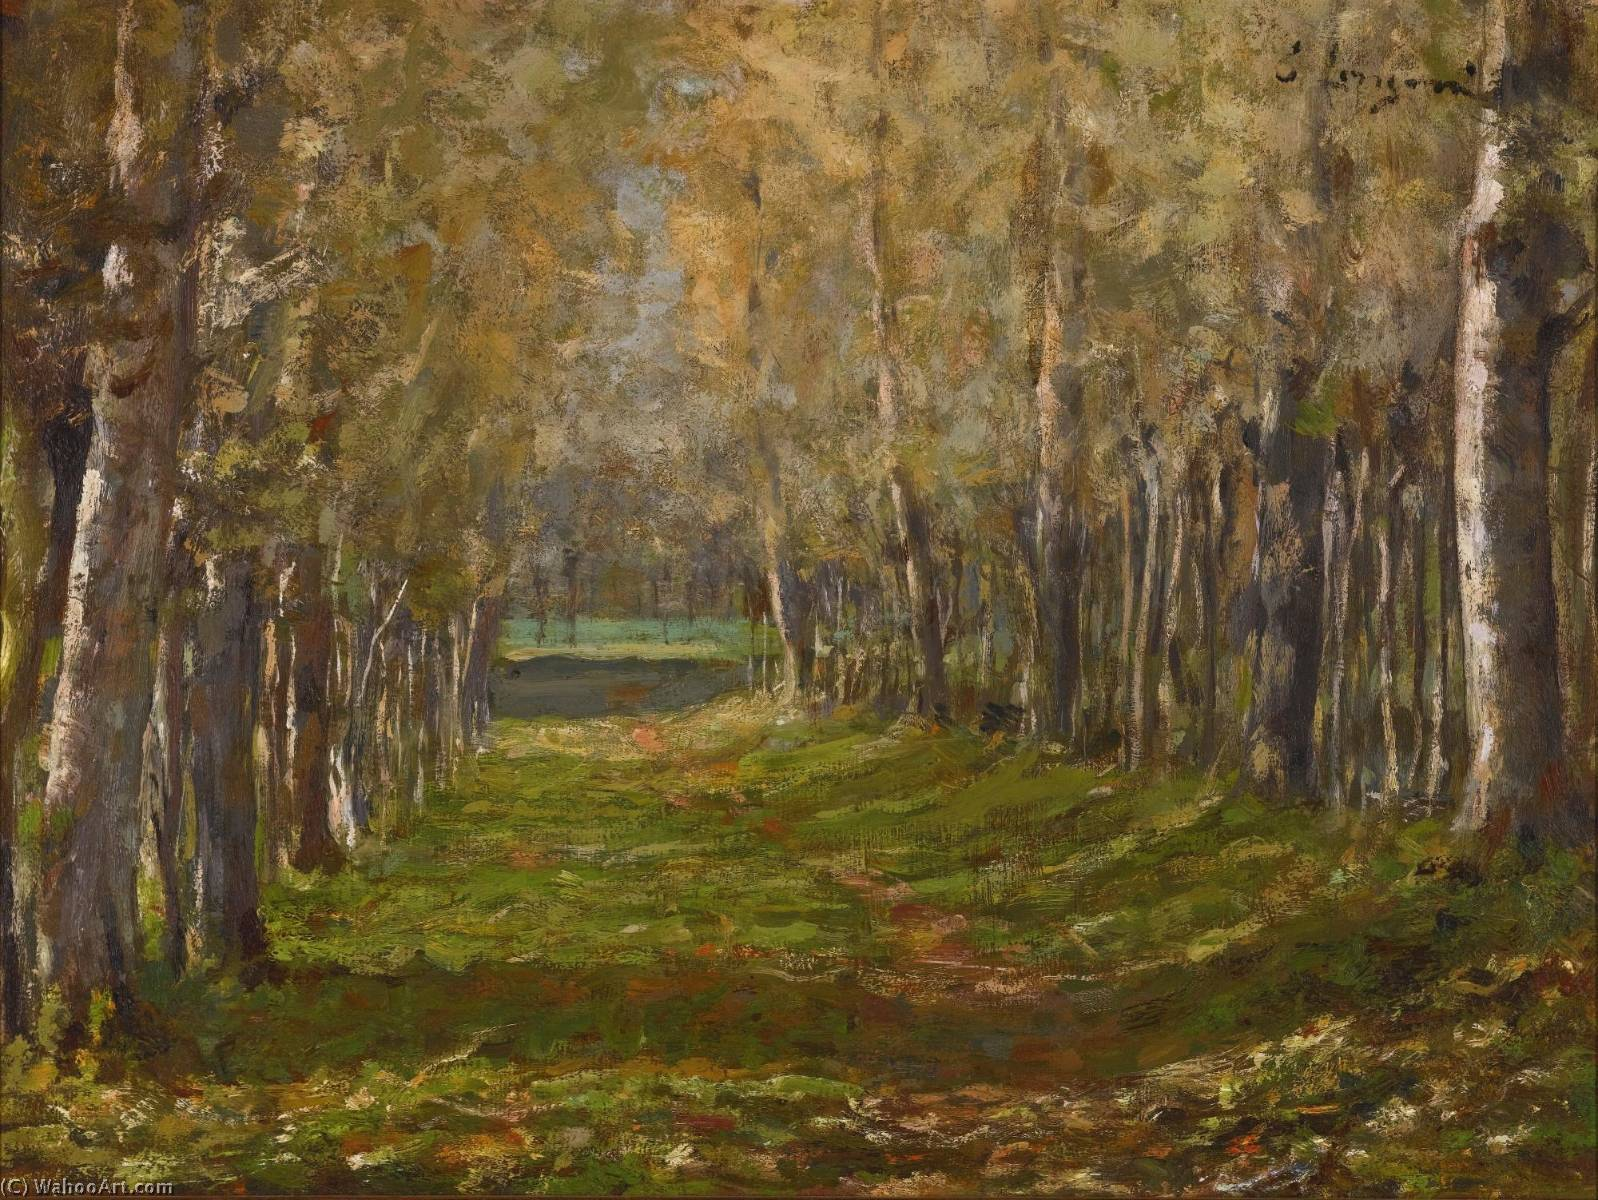 A Forest Path, Oil On Canvas by Emilio Longoni (1859-1932)